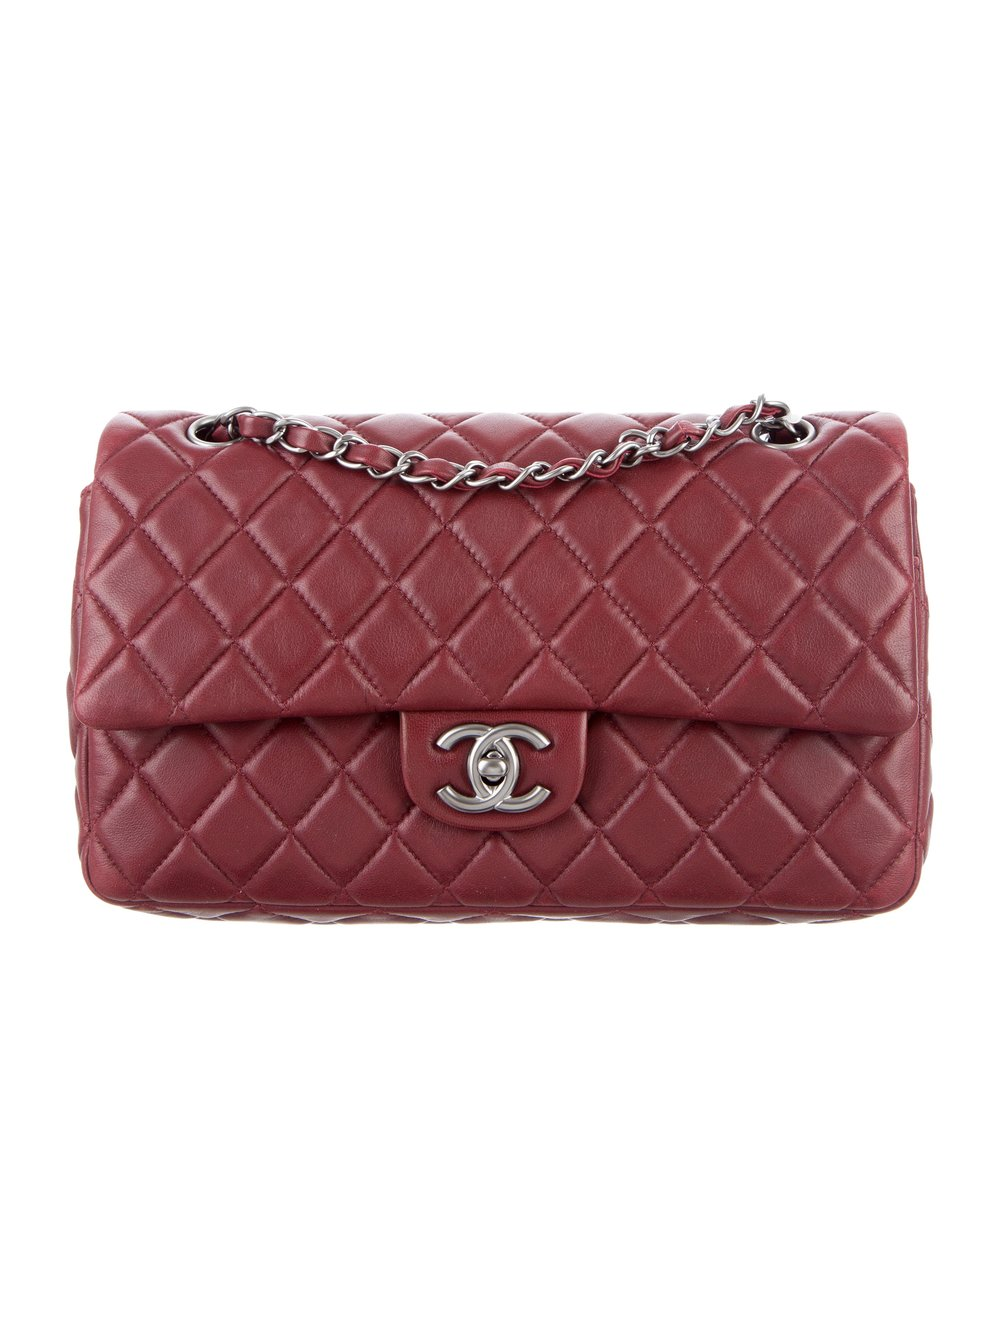 CHANEL SOFT QUILTED LAMBSKIN CLASSIC MEDIUM BURGUNDY DOUBLE FLAP BAG ($2,600.00)